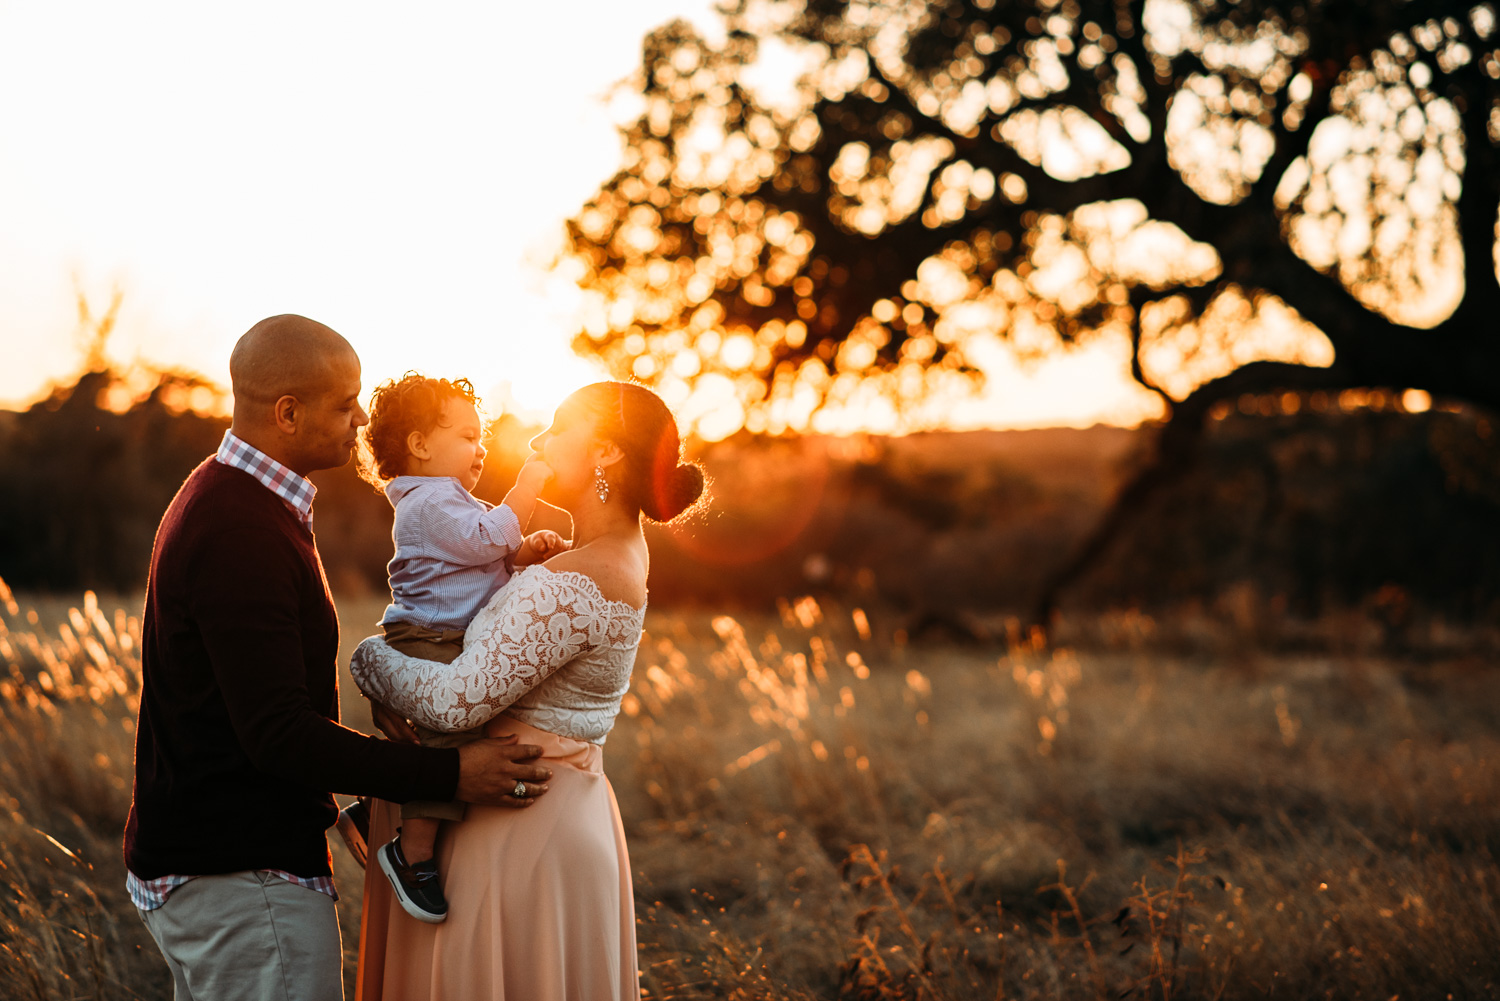 Abby Kennan-San Antonio Maternity Photographer-San Antonio Newborn Photographer-San Antonio Lifestyle Photographer-San Antonio Family Photographer-1.jpg